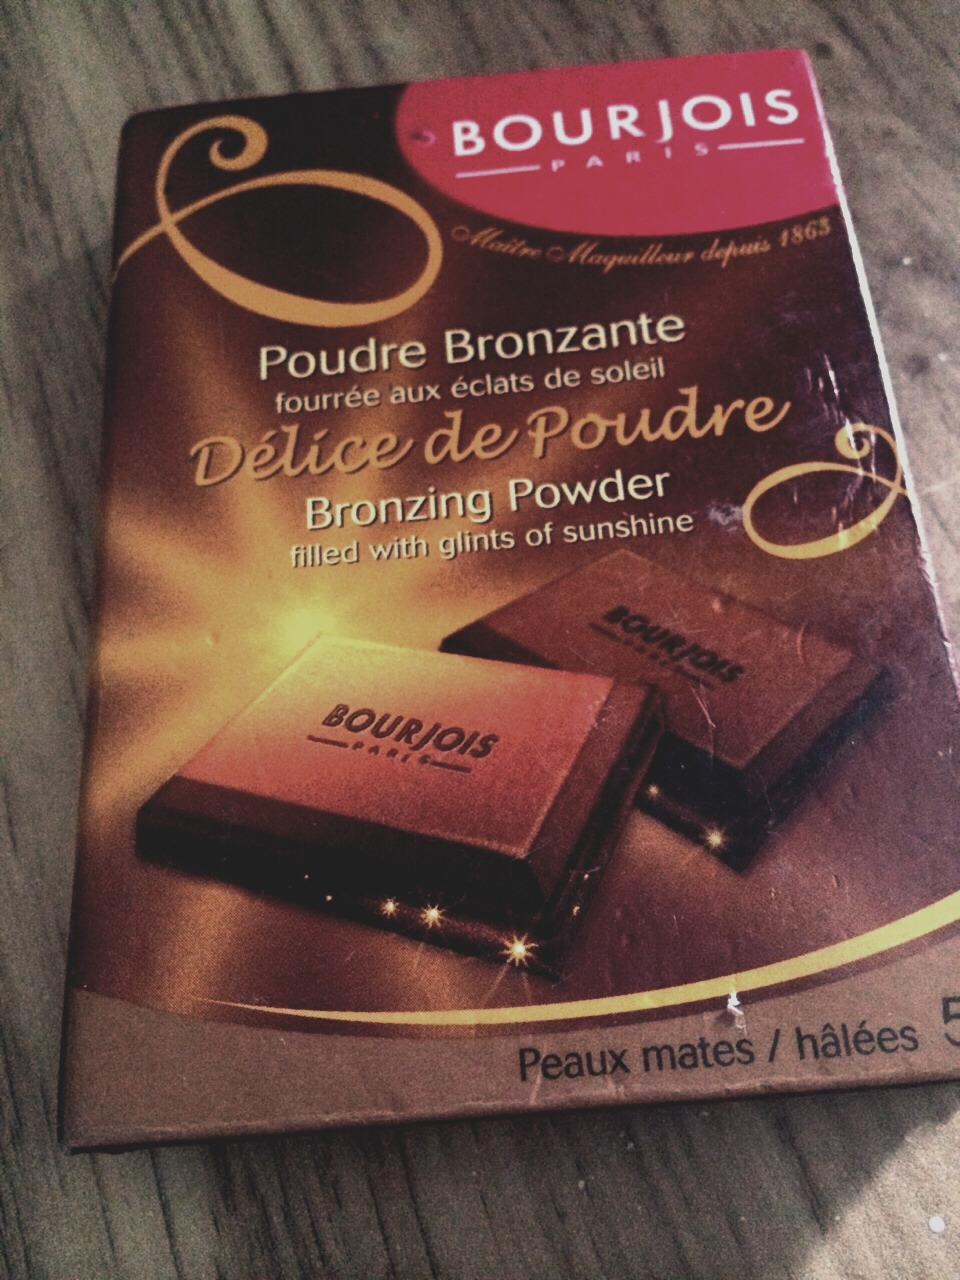 Bronzer to give a glowy and fresh look!